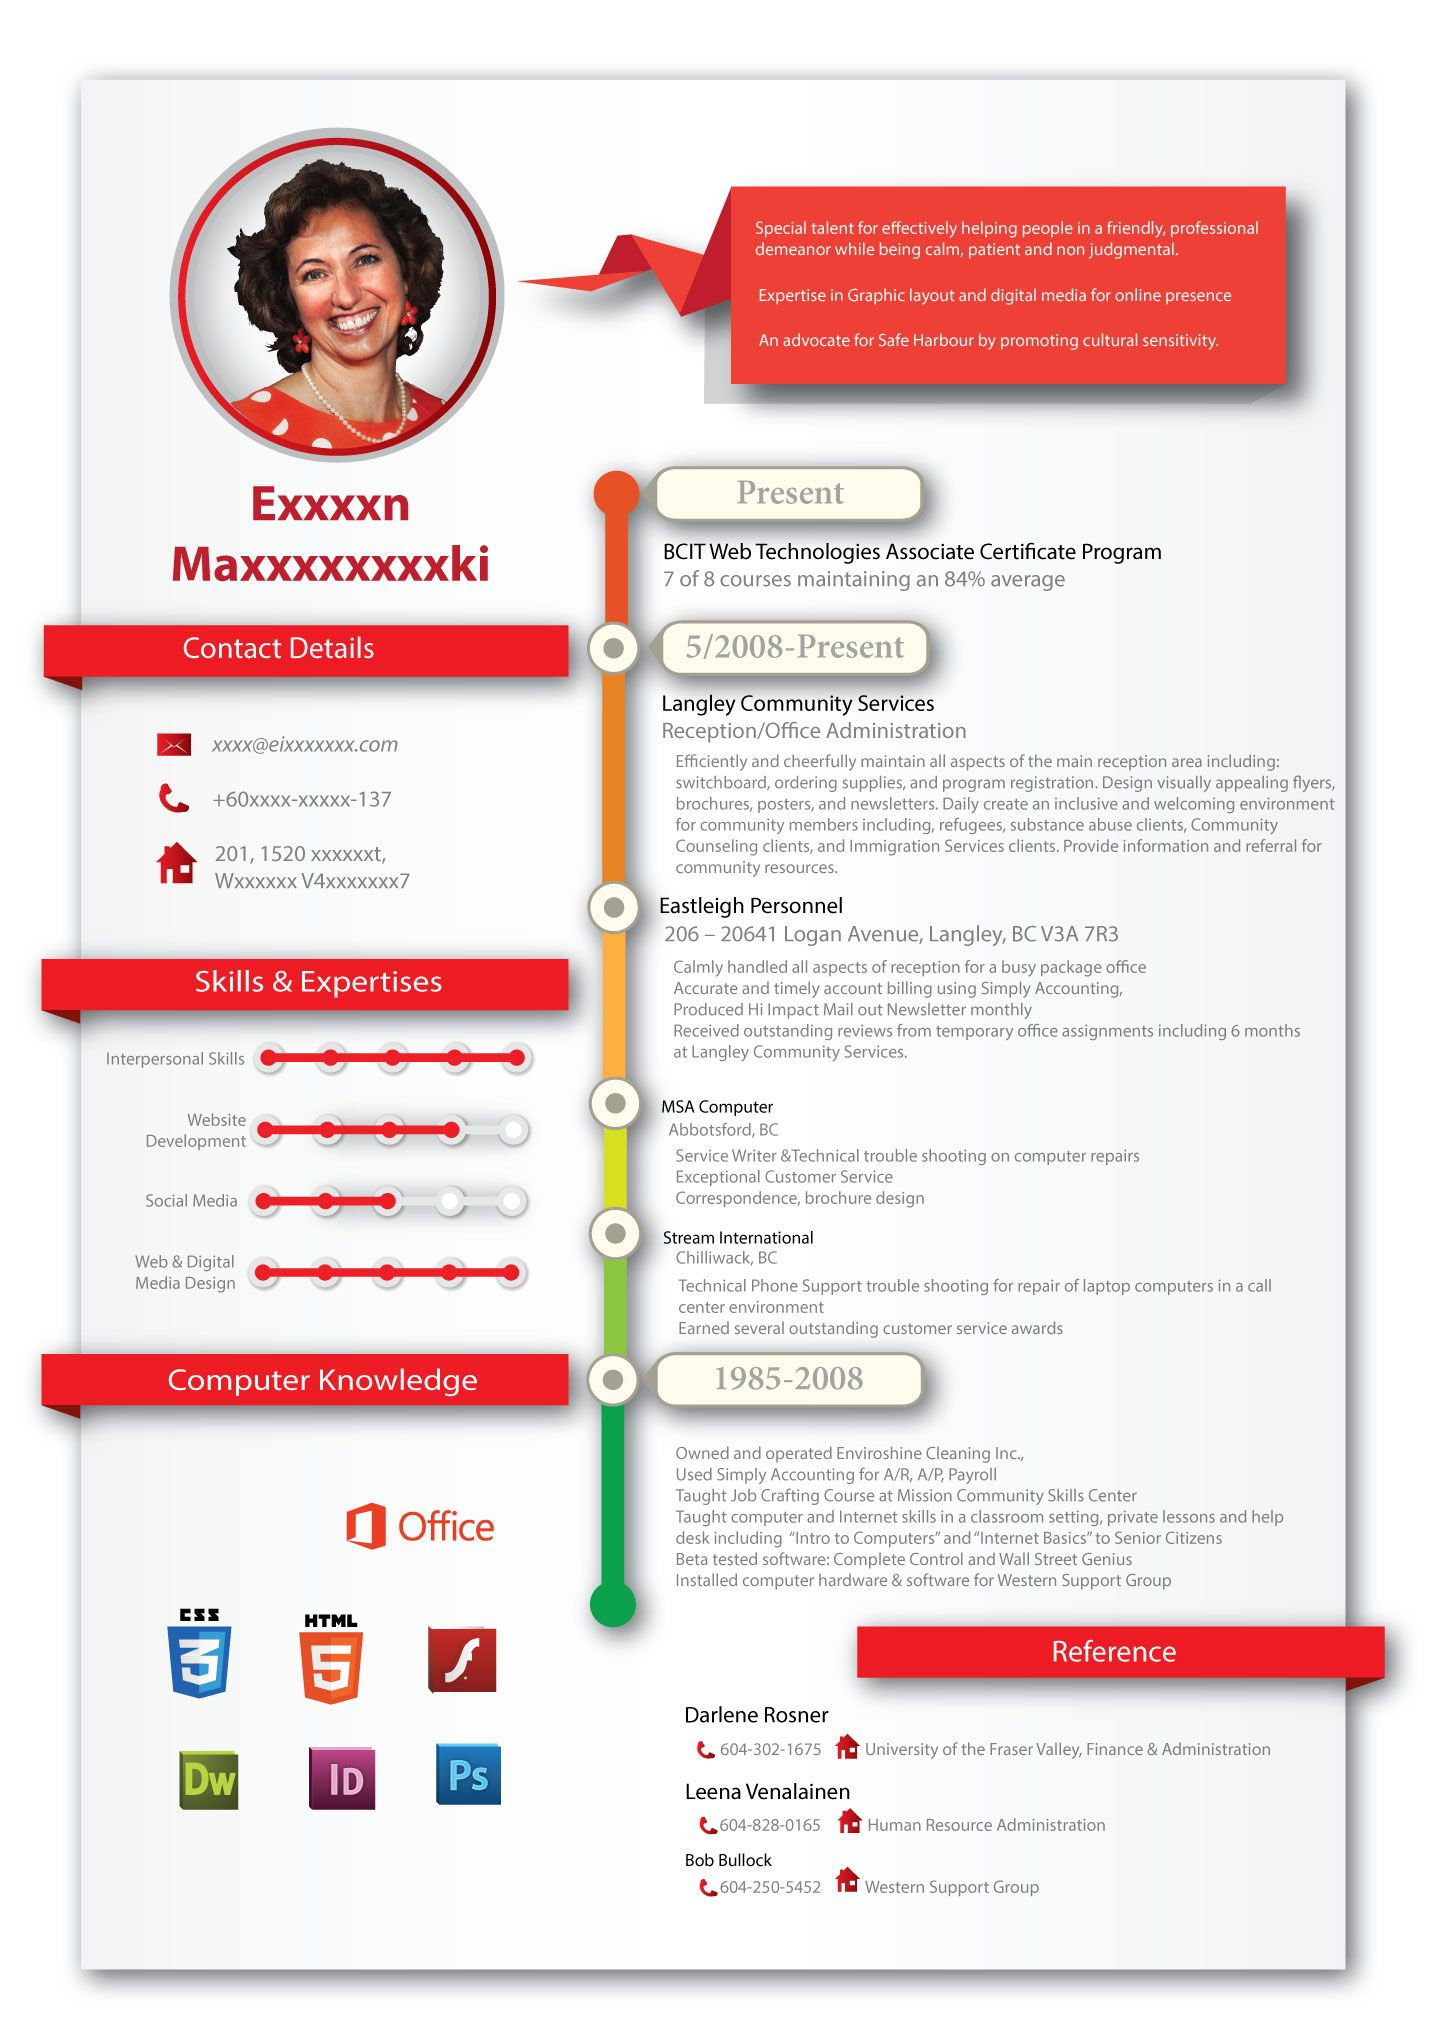 creative professional resume design for creative people